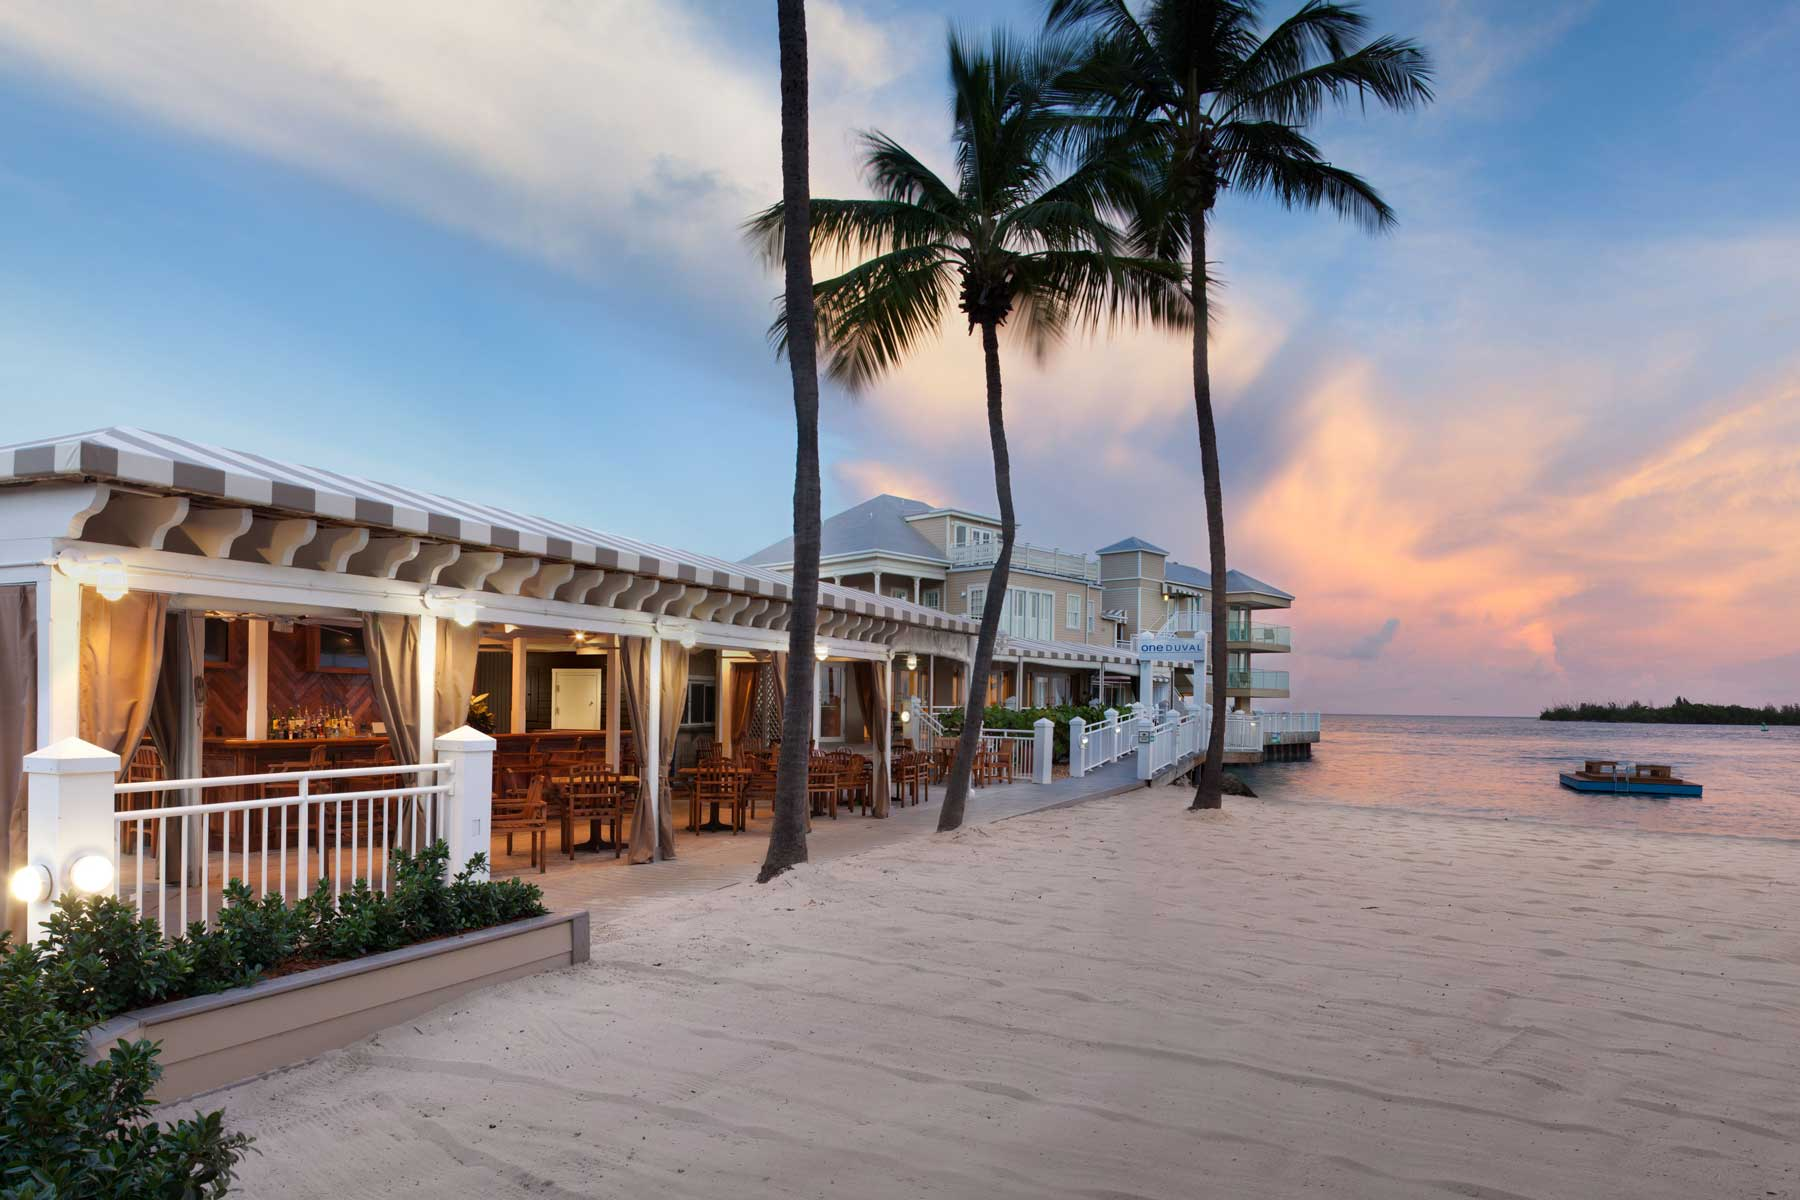 Pier House Resort & Spa in Key West, Florida